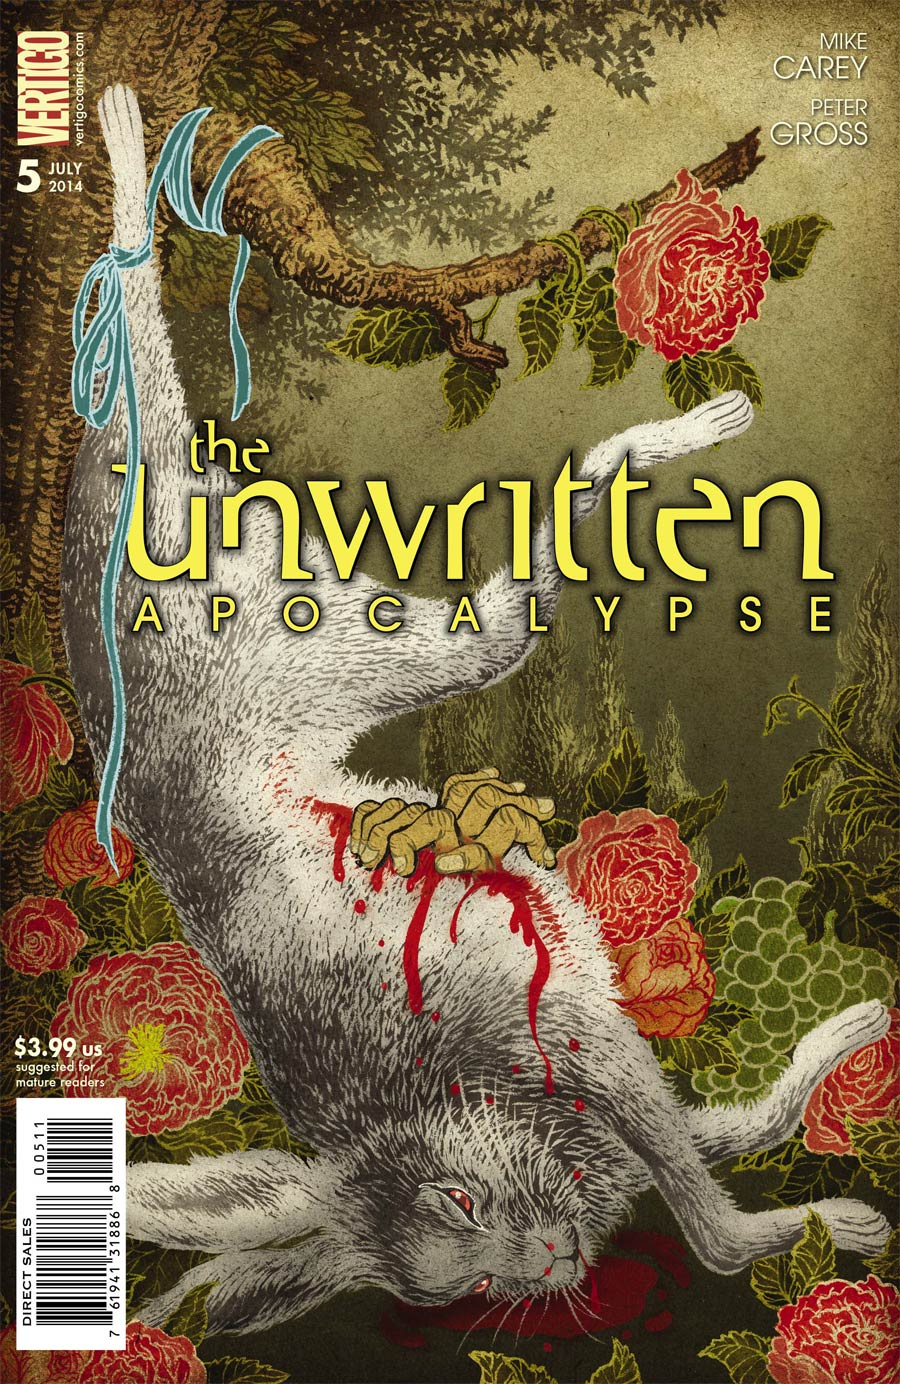 Unwritten Vol 2 Apocalypse #5